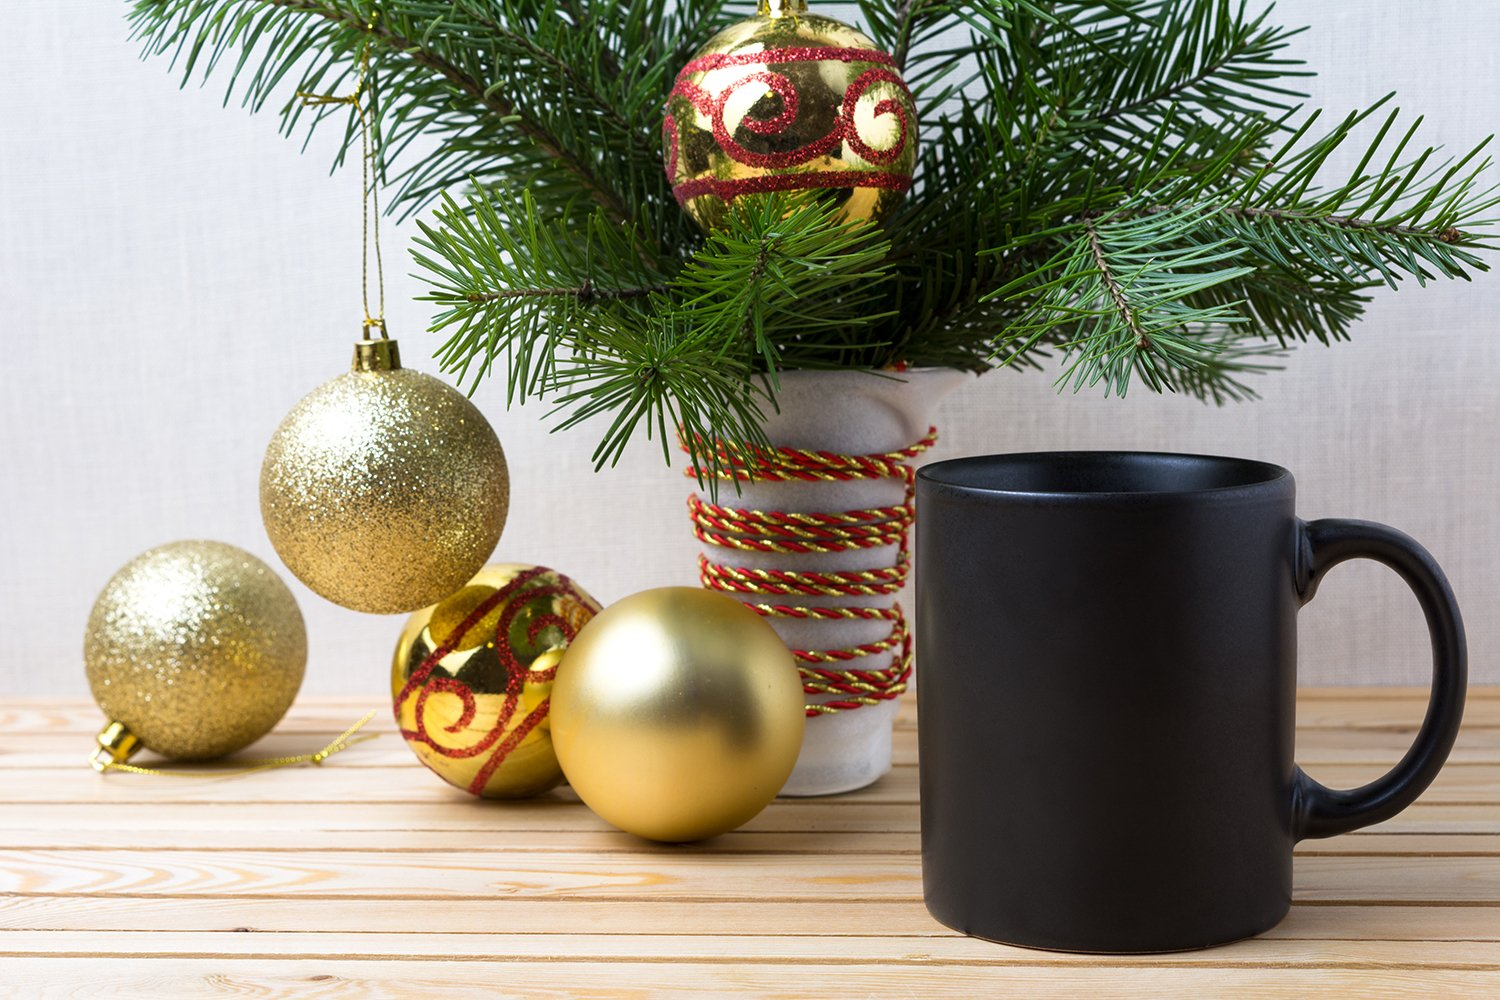 Black coffee mug mockup with golden red Christmas ornaments example image 2